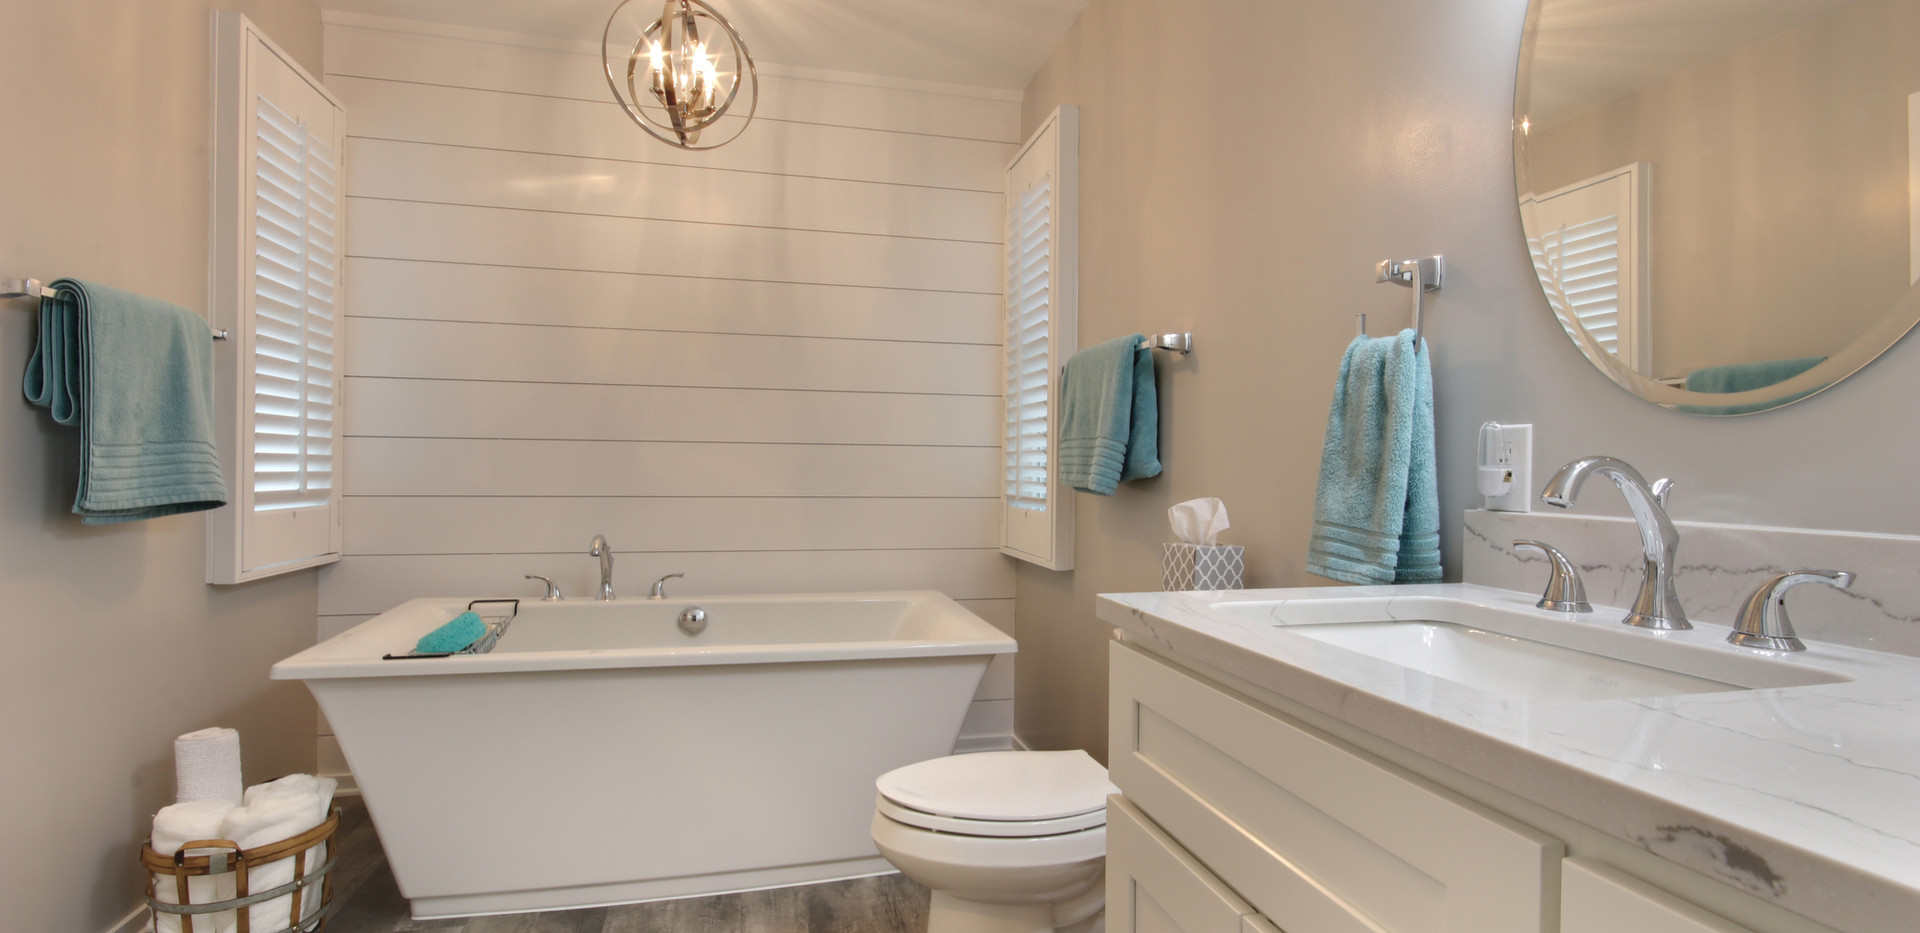 Beautiful full bathroom remodel in Holland featuring new floors, paint, vanity, tub, and more